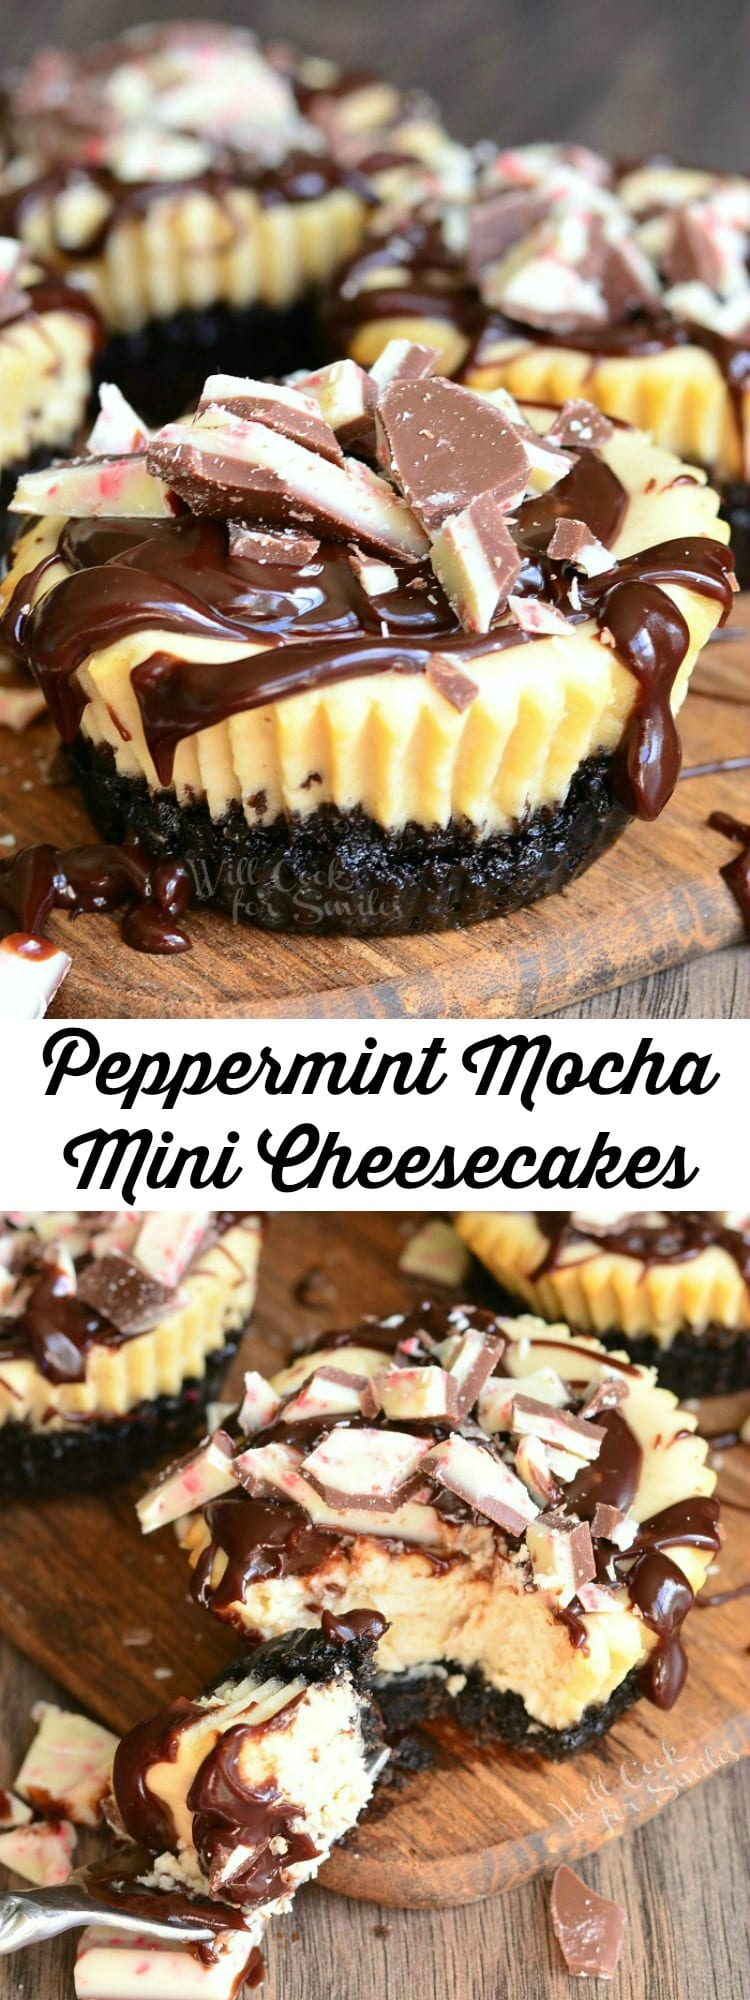 Peppermint Mocha Mini Cheesecakes collage